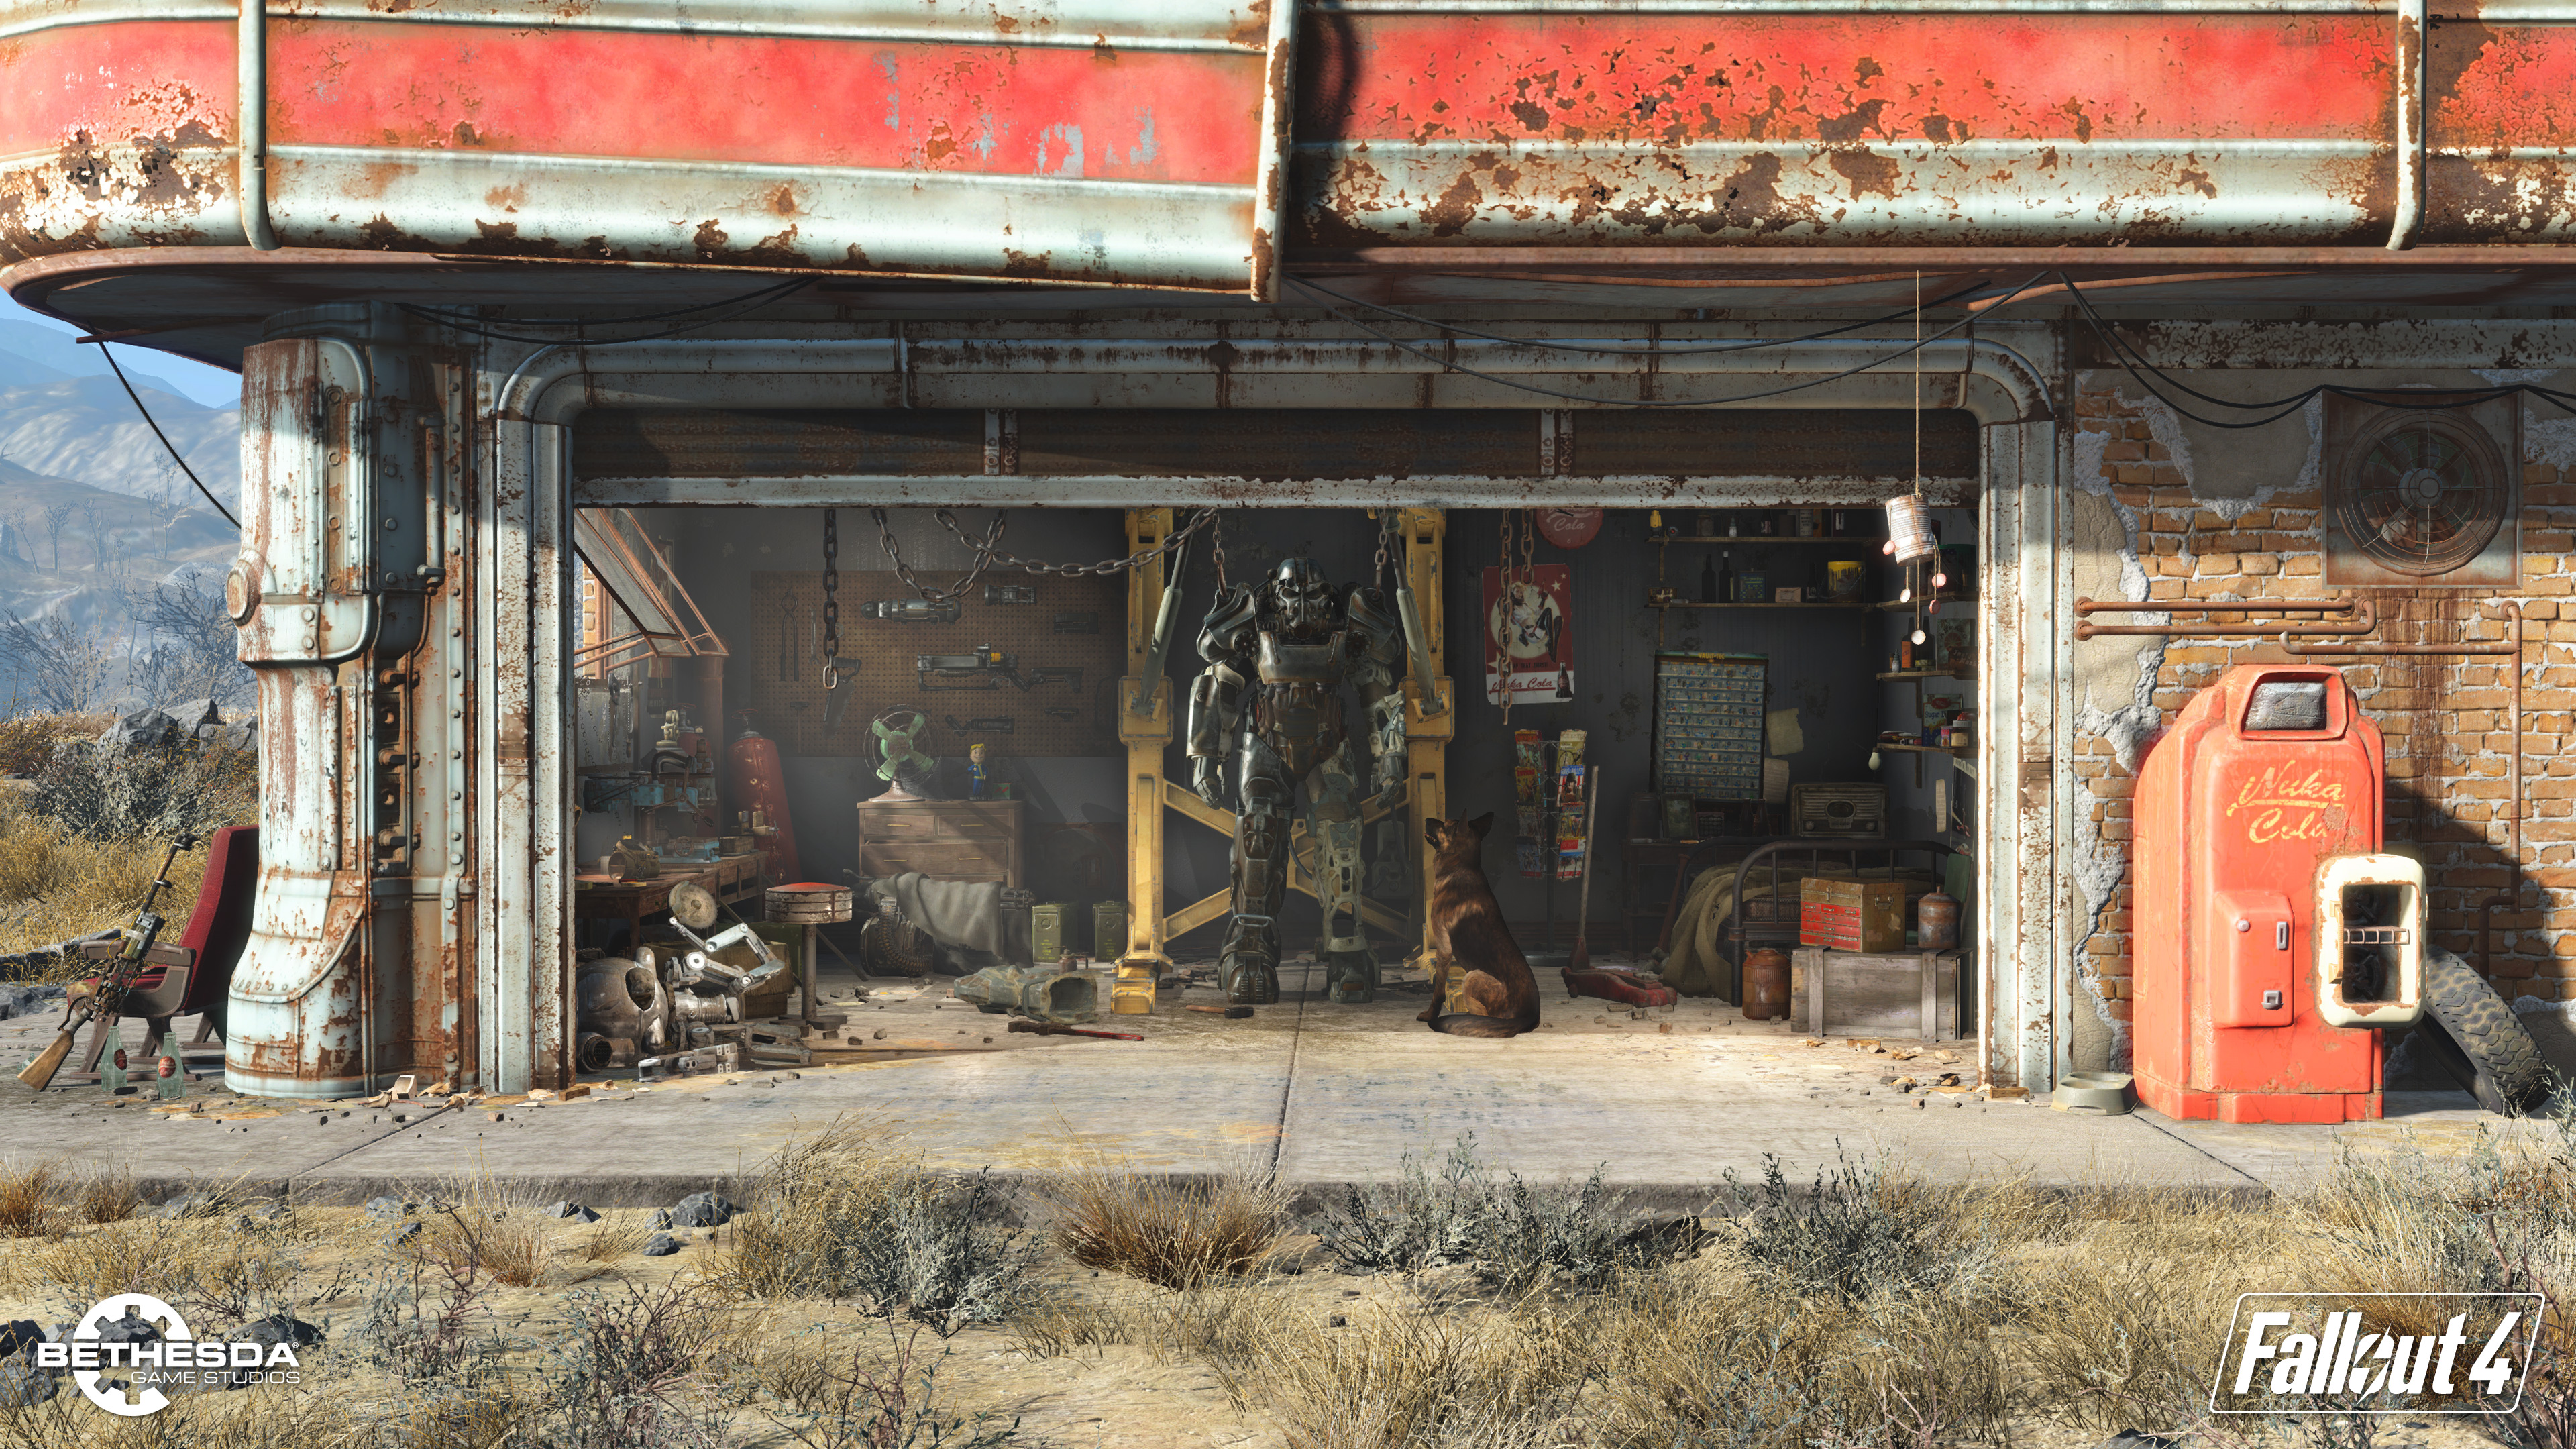 103 fallout 4 hd wallpapers background images wallpaper abyss